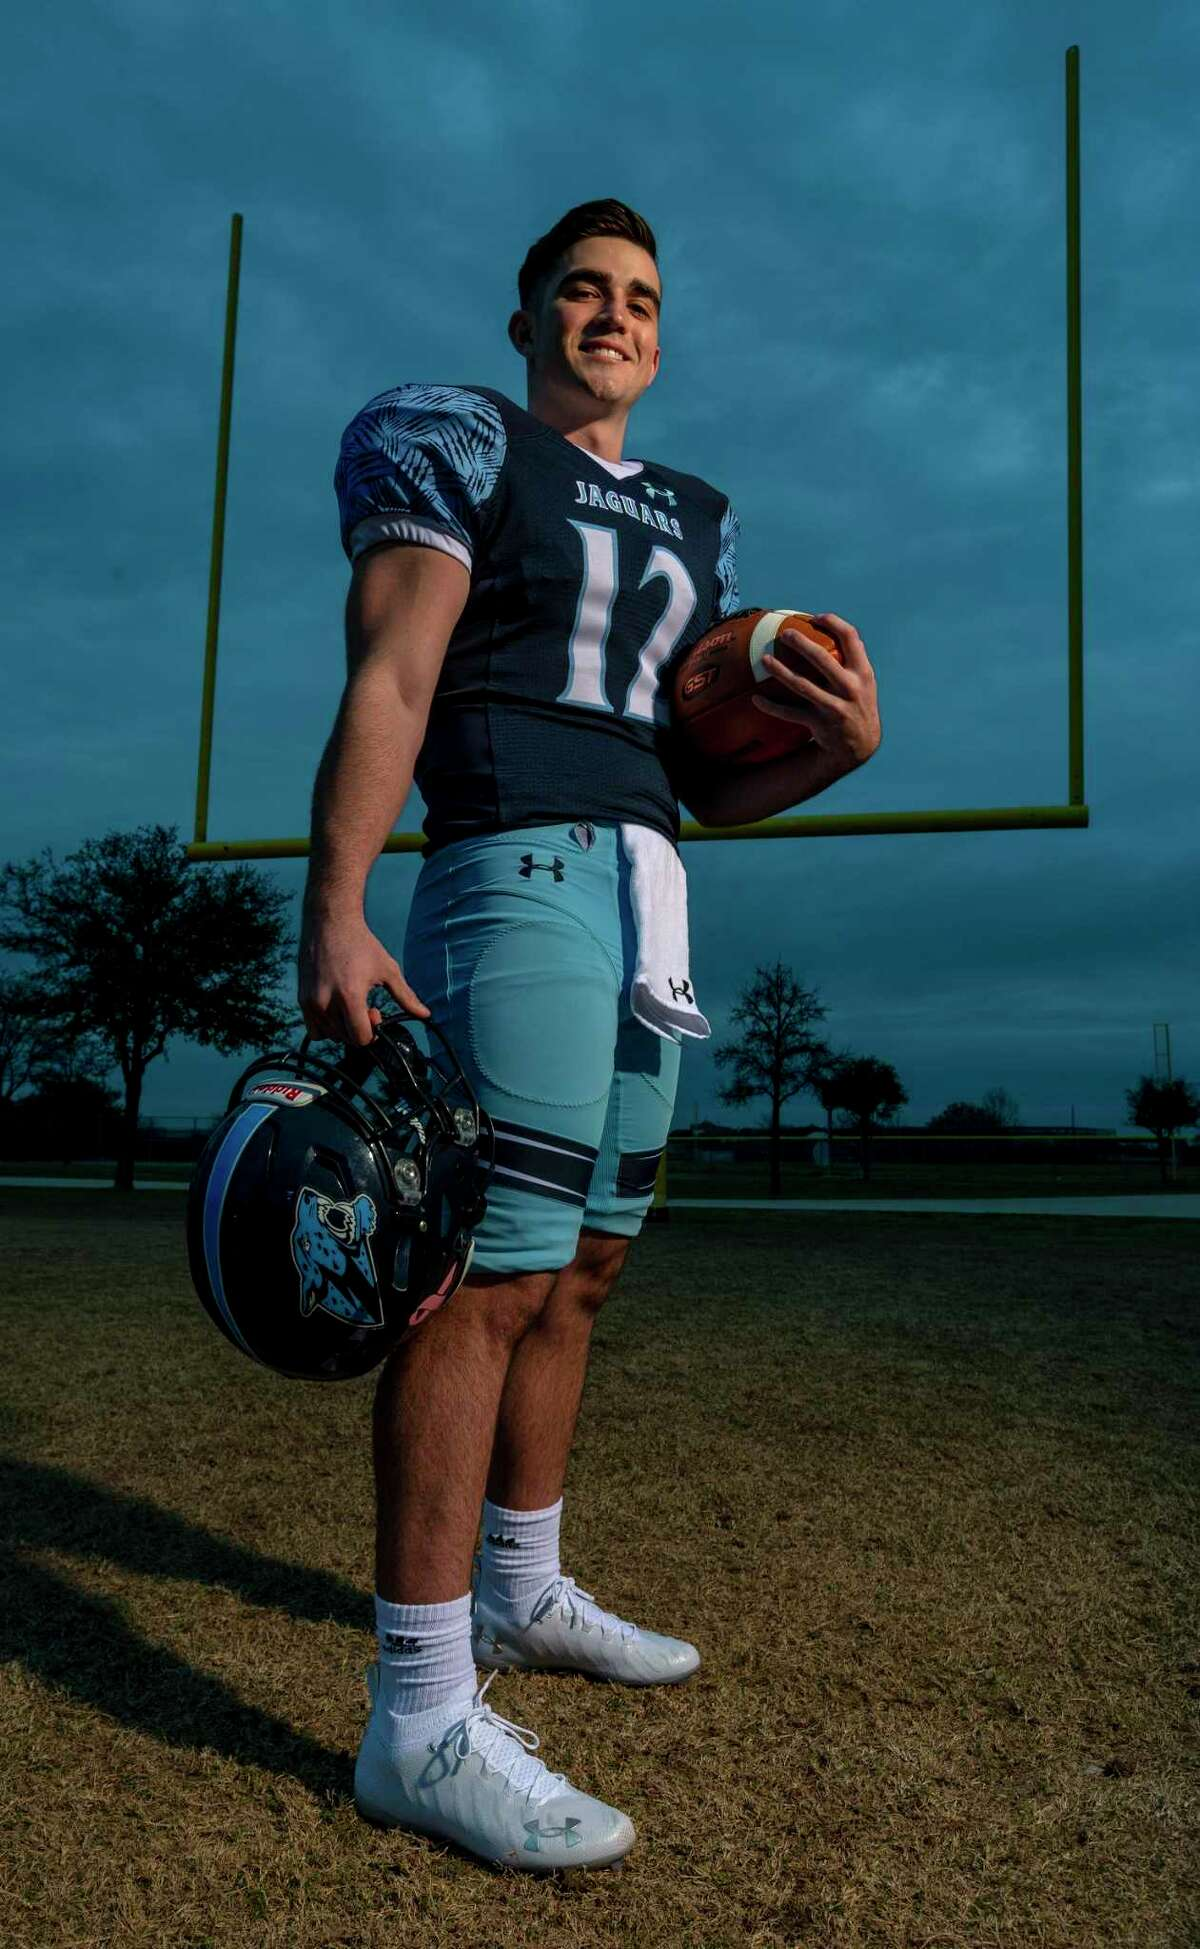 Express-News Offensive Player of the Year Johnson High School quarterback Ty Reasoner poses Thursday, Jan. 21, 2021 on the school's practice field.